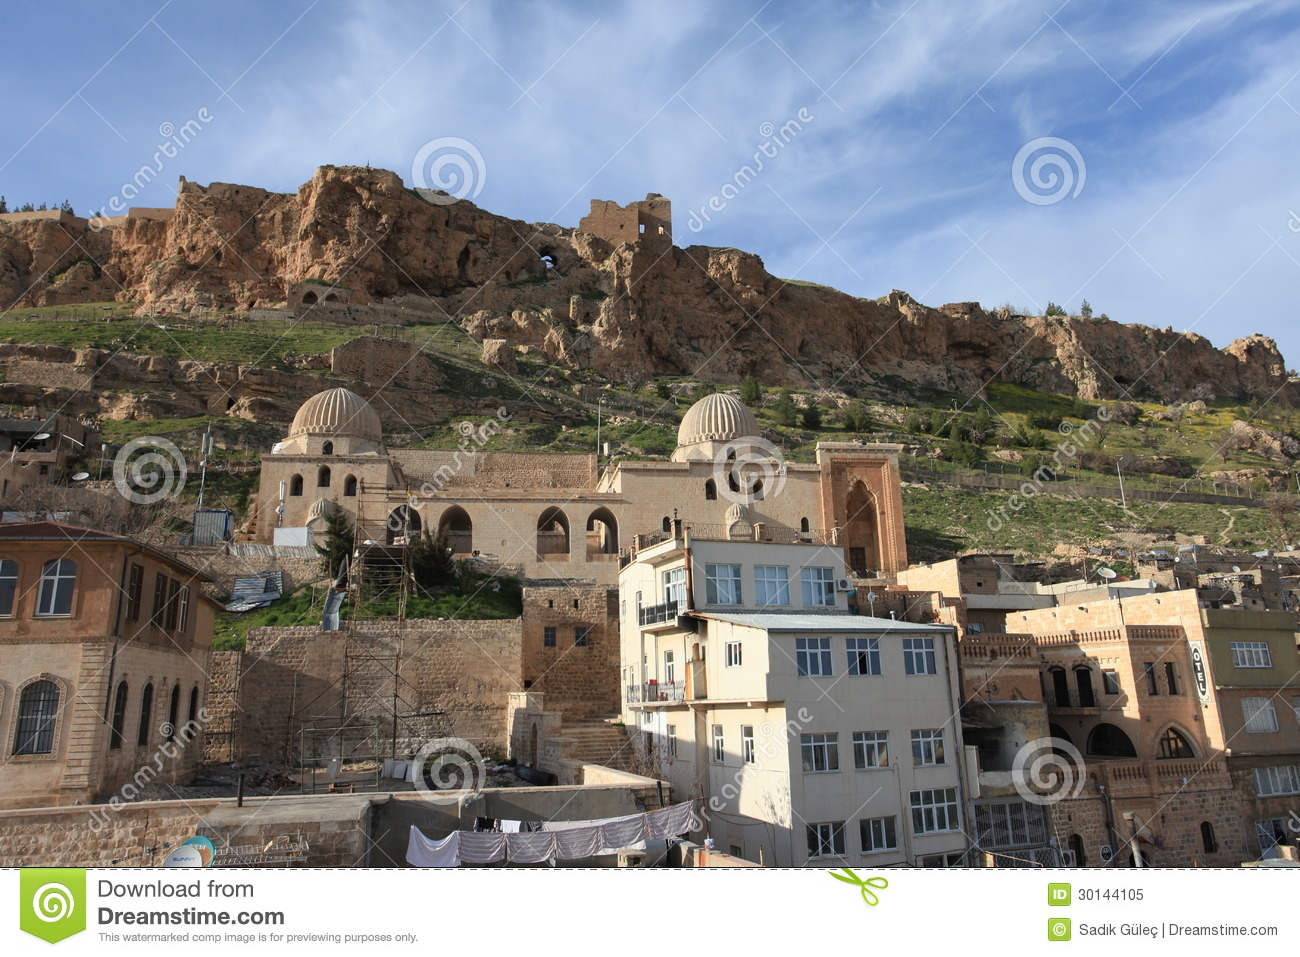 Mardin Turkey  city photos : MARDIN,TURKEY MARCH 19, 2013 : The capital of Mardin Province, it is ...